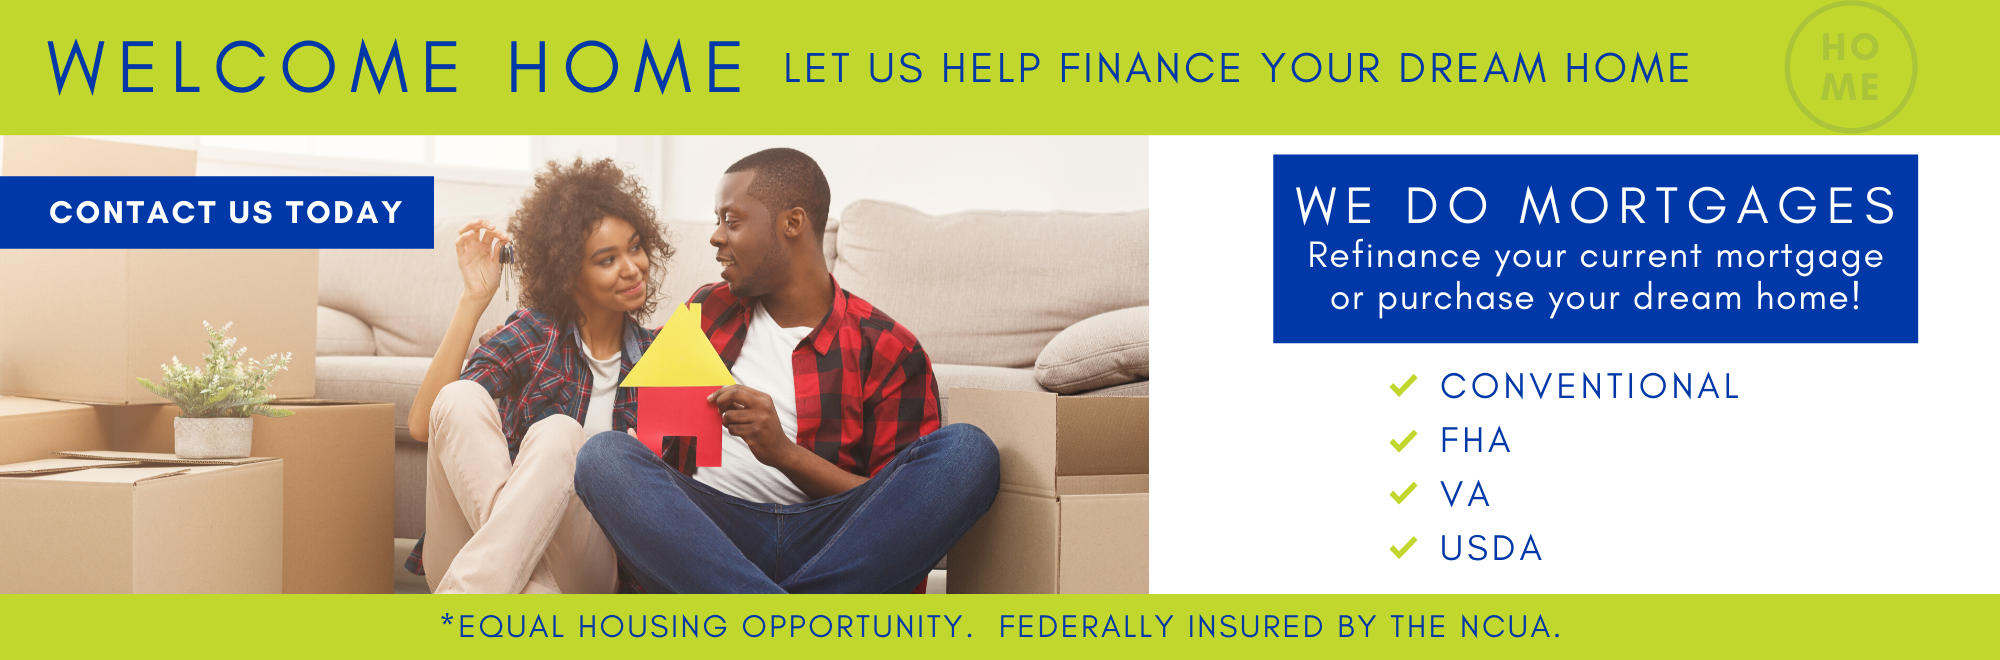 Yes, we do mortgages!